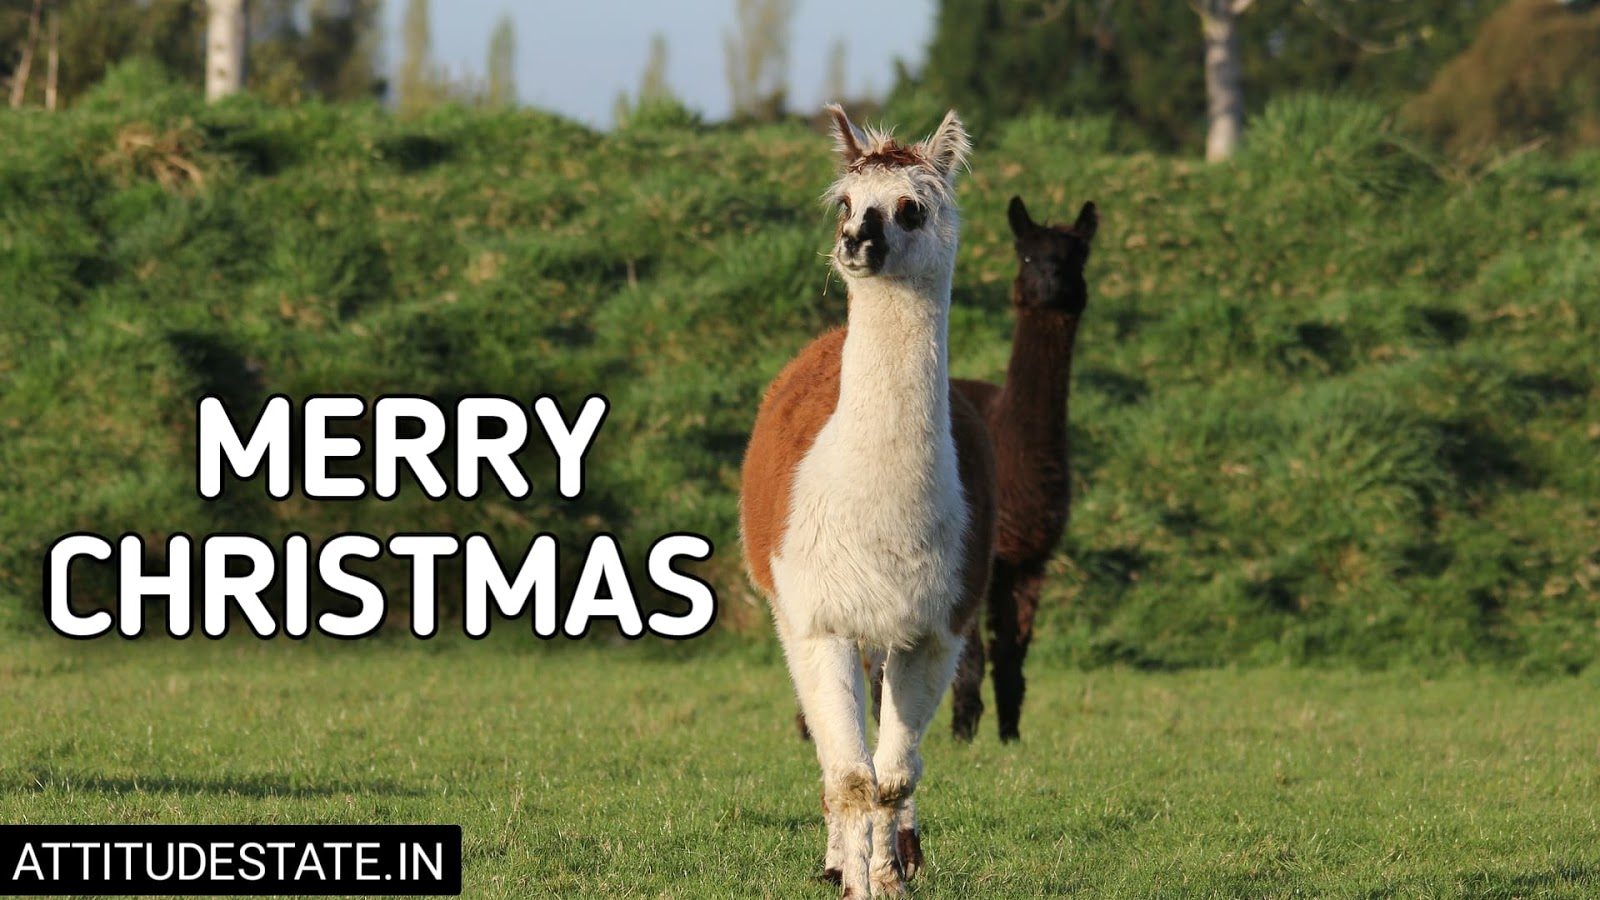 funny merry christmas messages greetings